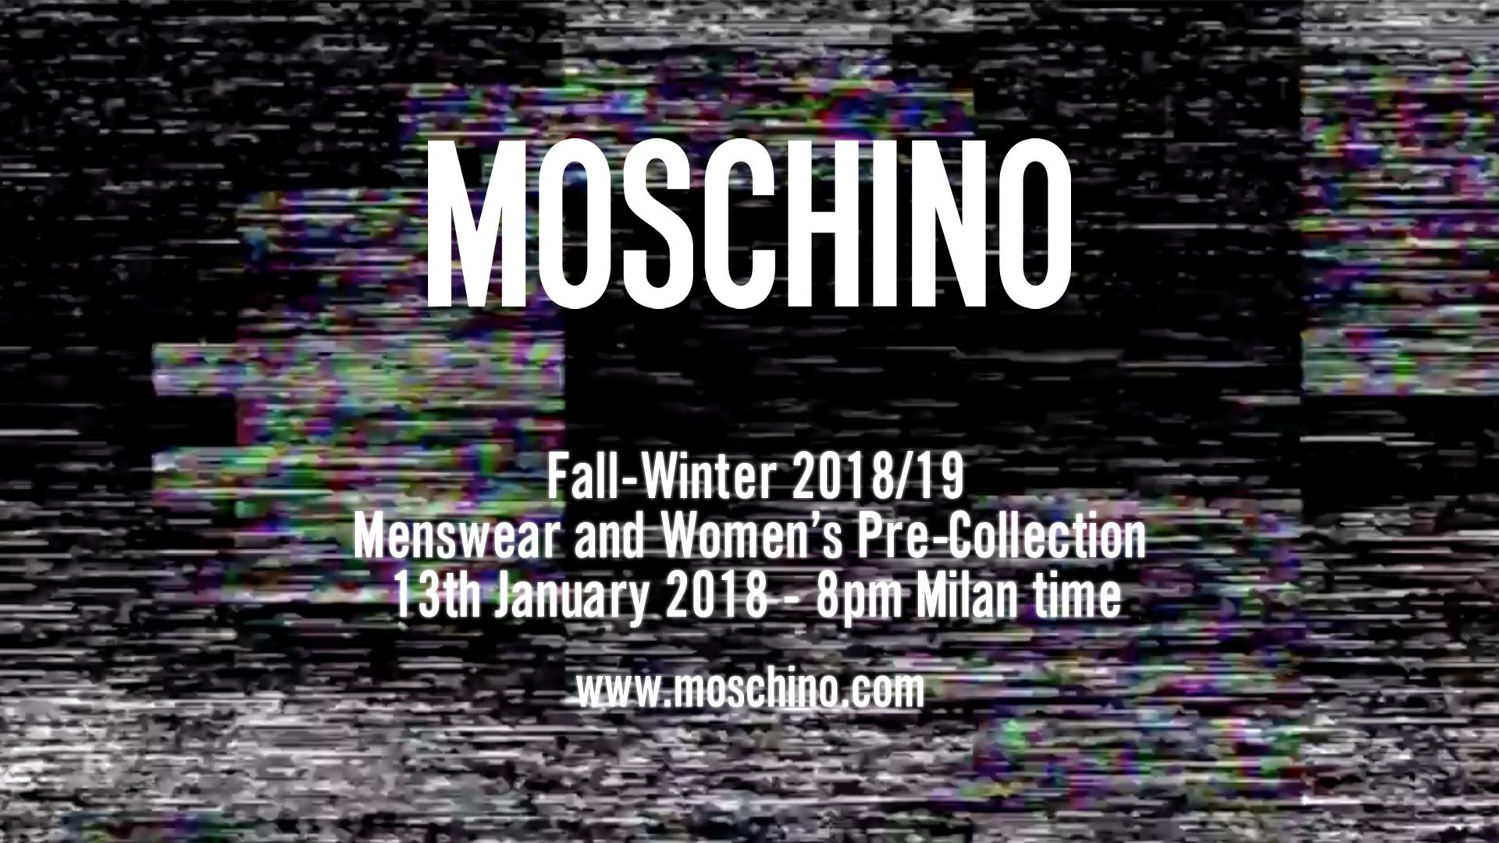 Moschino Fall Winter 2018 Menswear and Women's Pre Collection Fashion Show Live Streaming